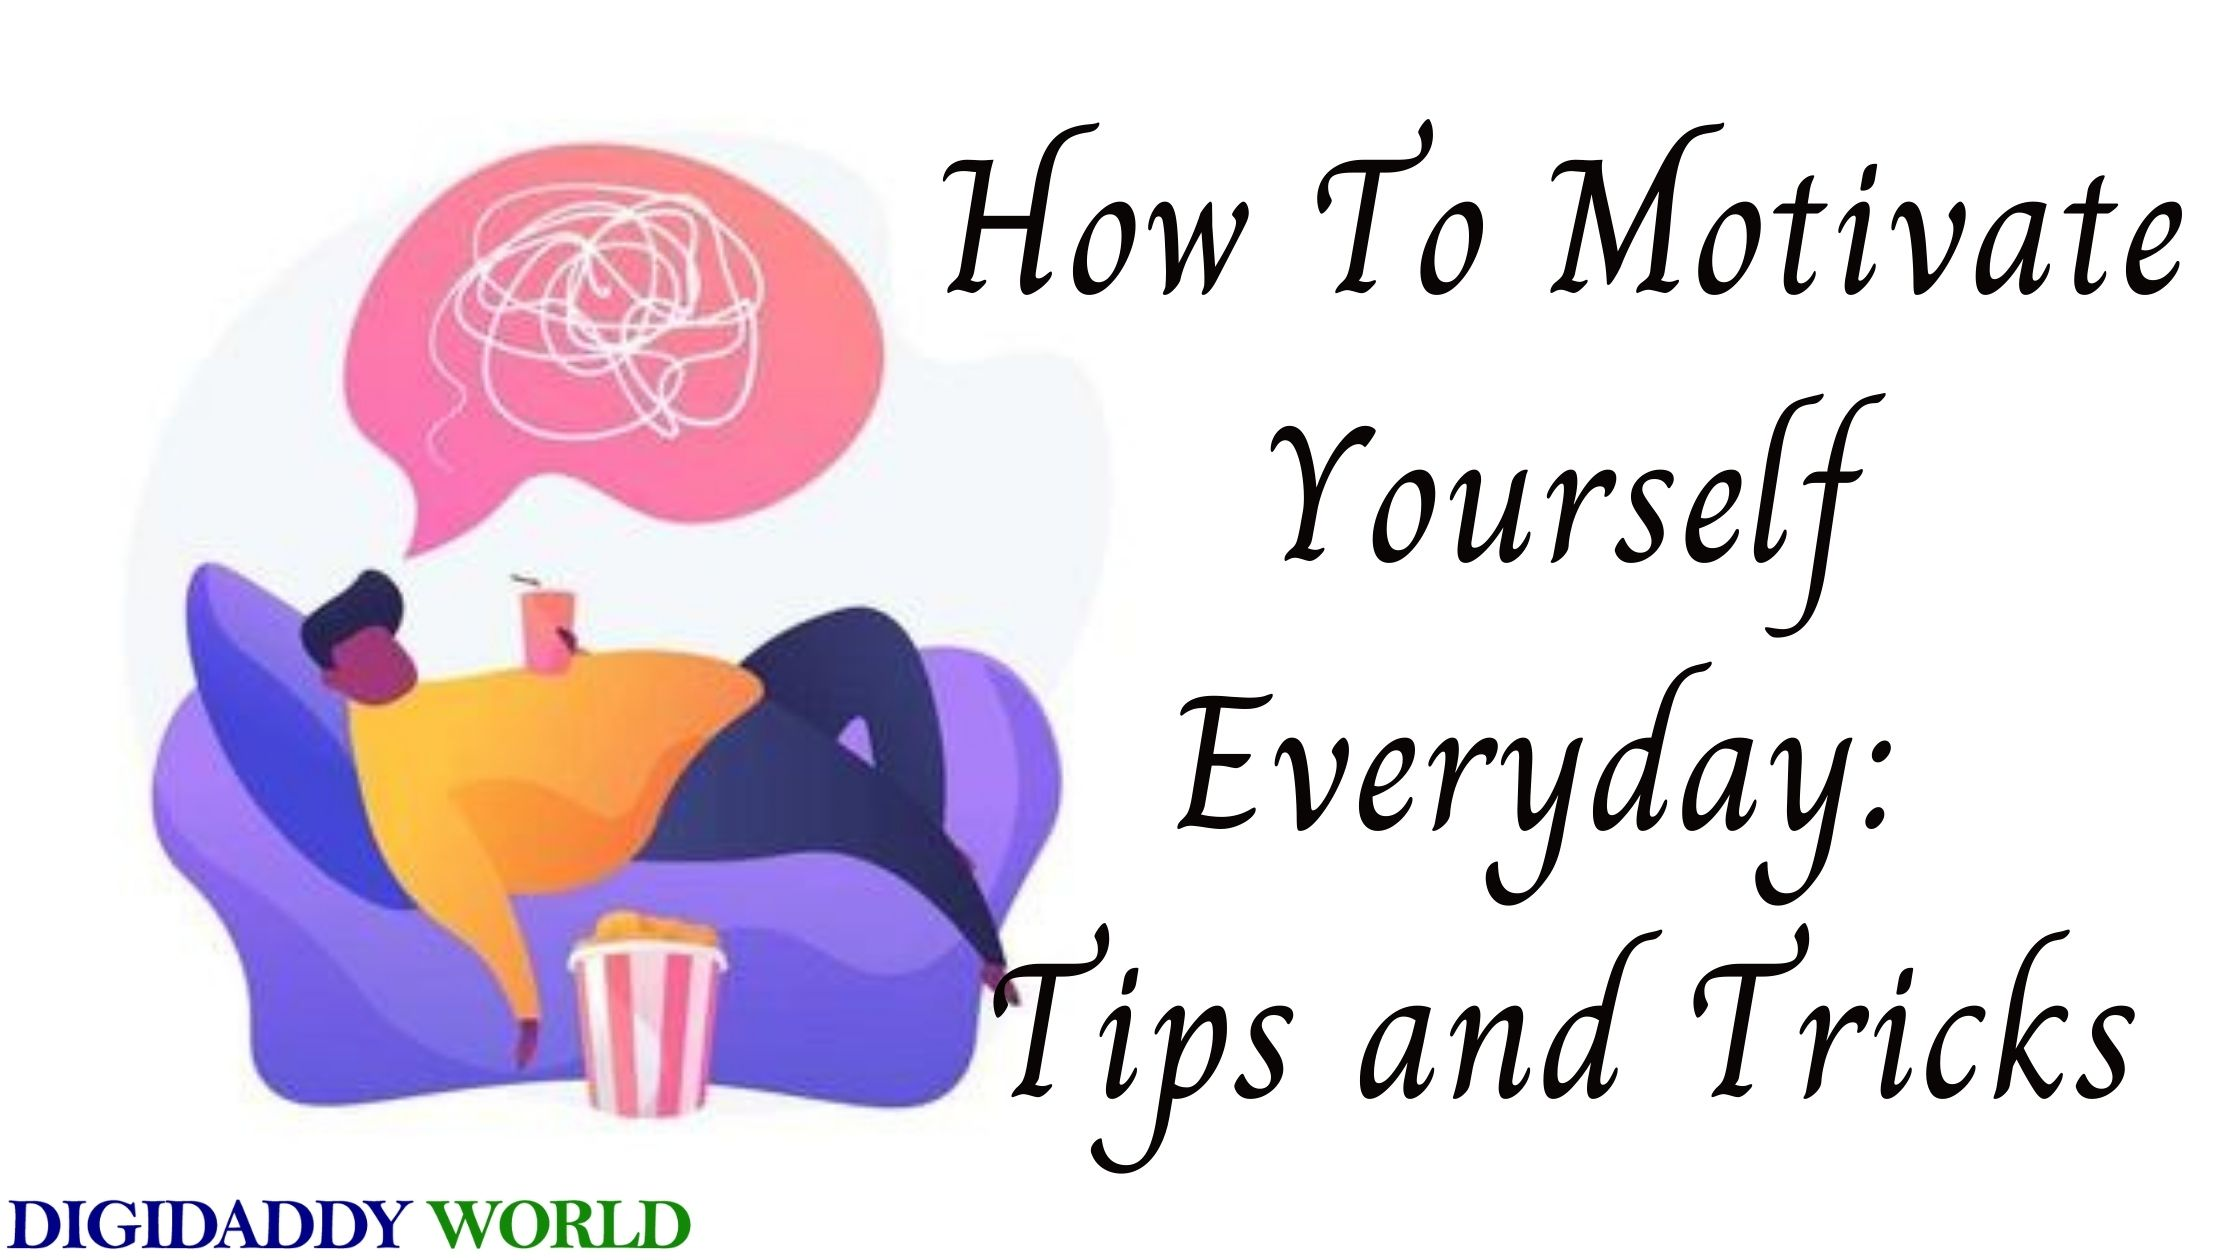 How To Motivate Yourself Everyday